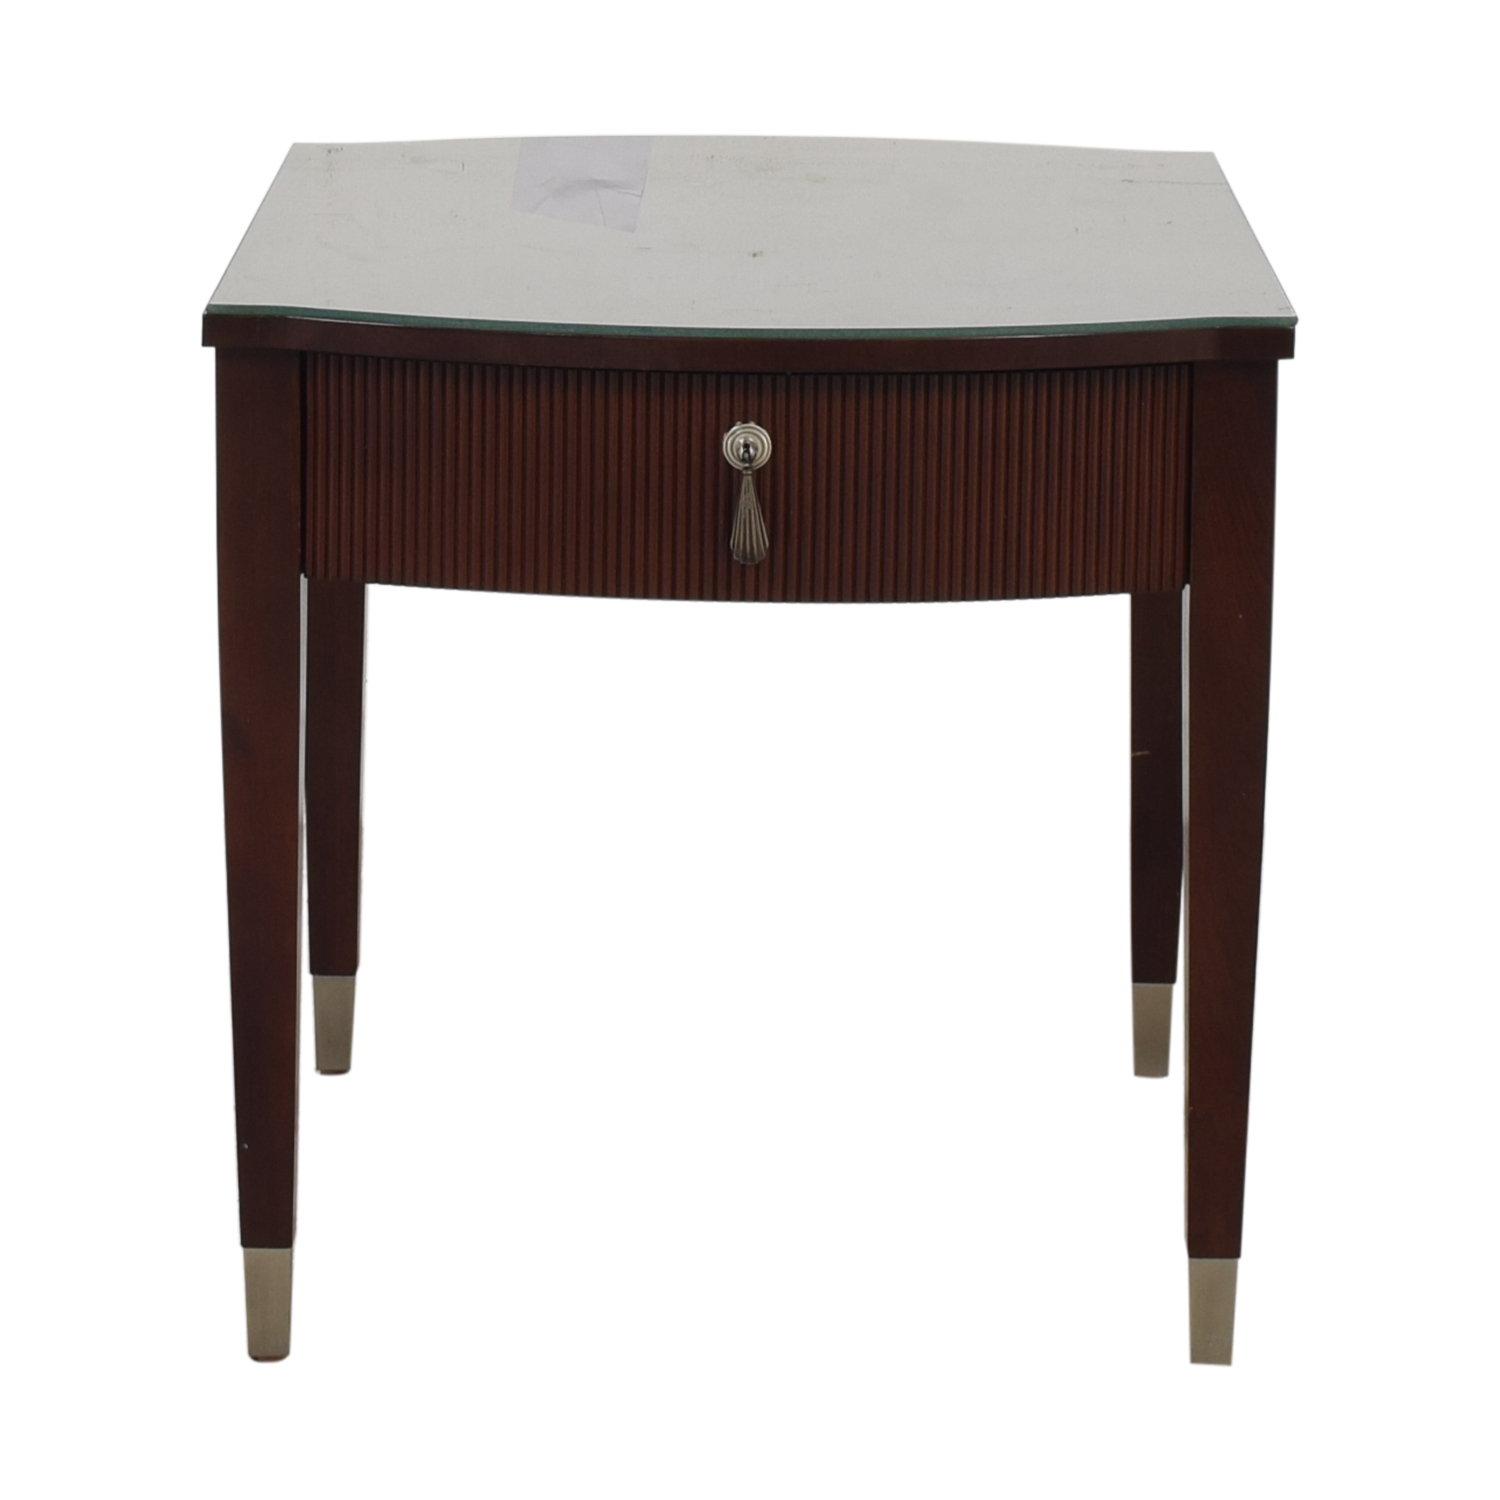 Ethan Allen Ethan Allen Avenue Side Table with Drawer pa